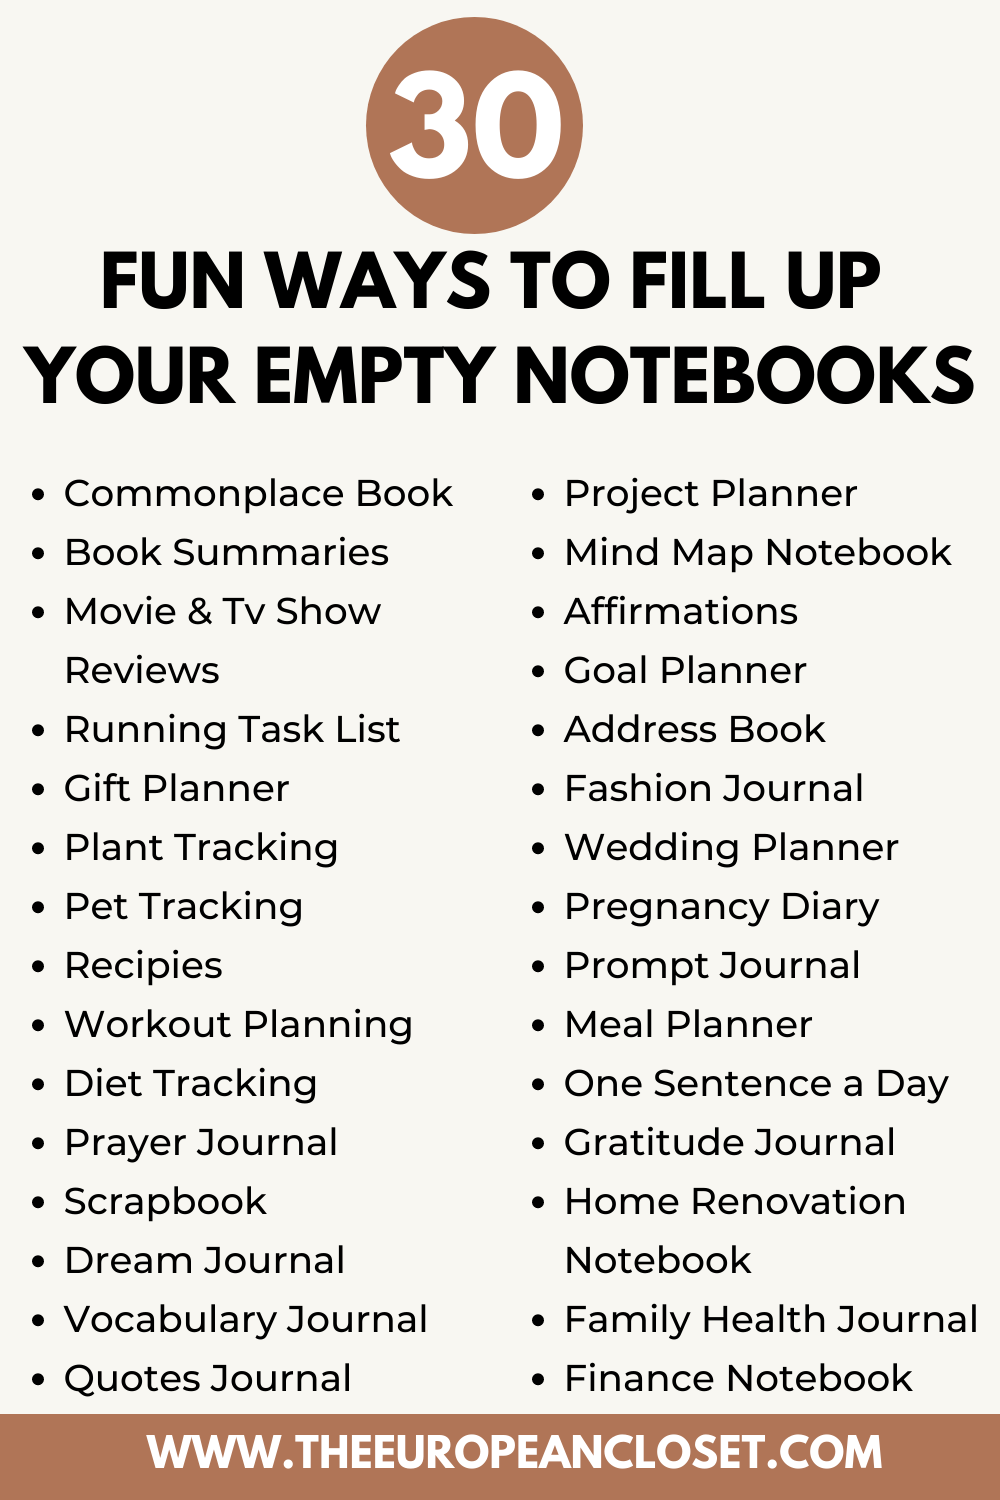 Looking for new ways to fill up your empty notebooks? Look no further. Here are 30 fun ways you can fill up your journals today!